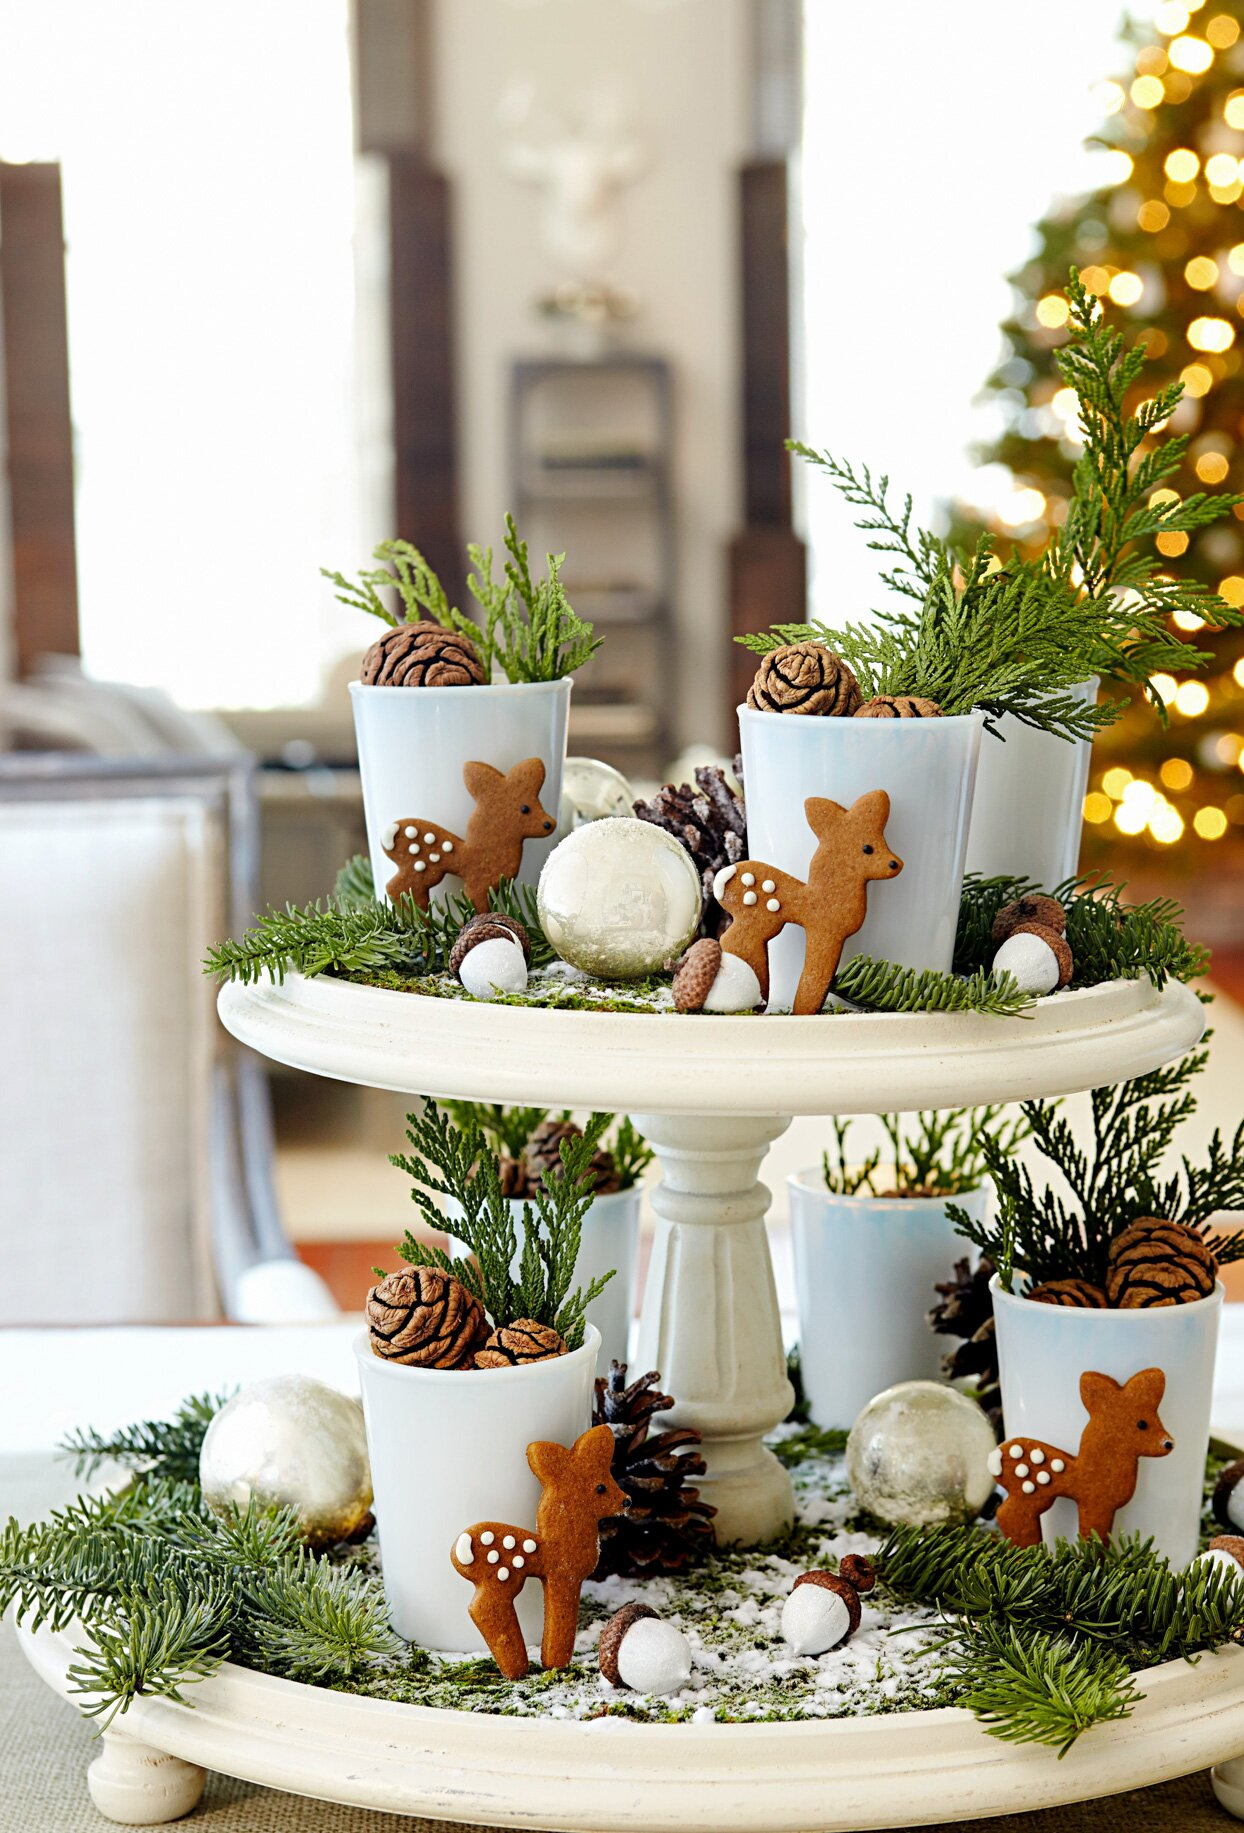 Better Homes And Gardens Christmas Dishes 2020 Easy to Make Christmas Centerpieces | Better Homes & Gardens